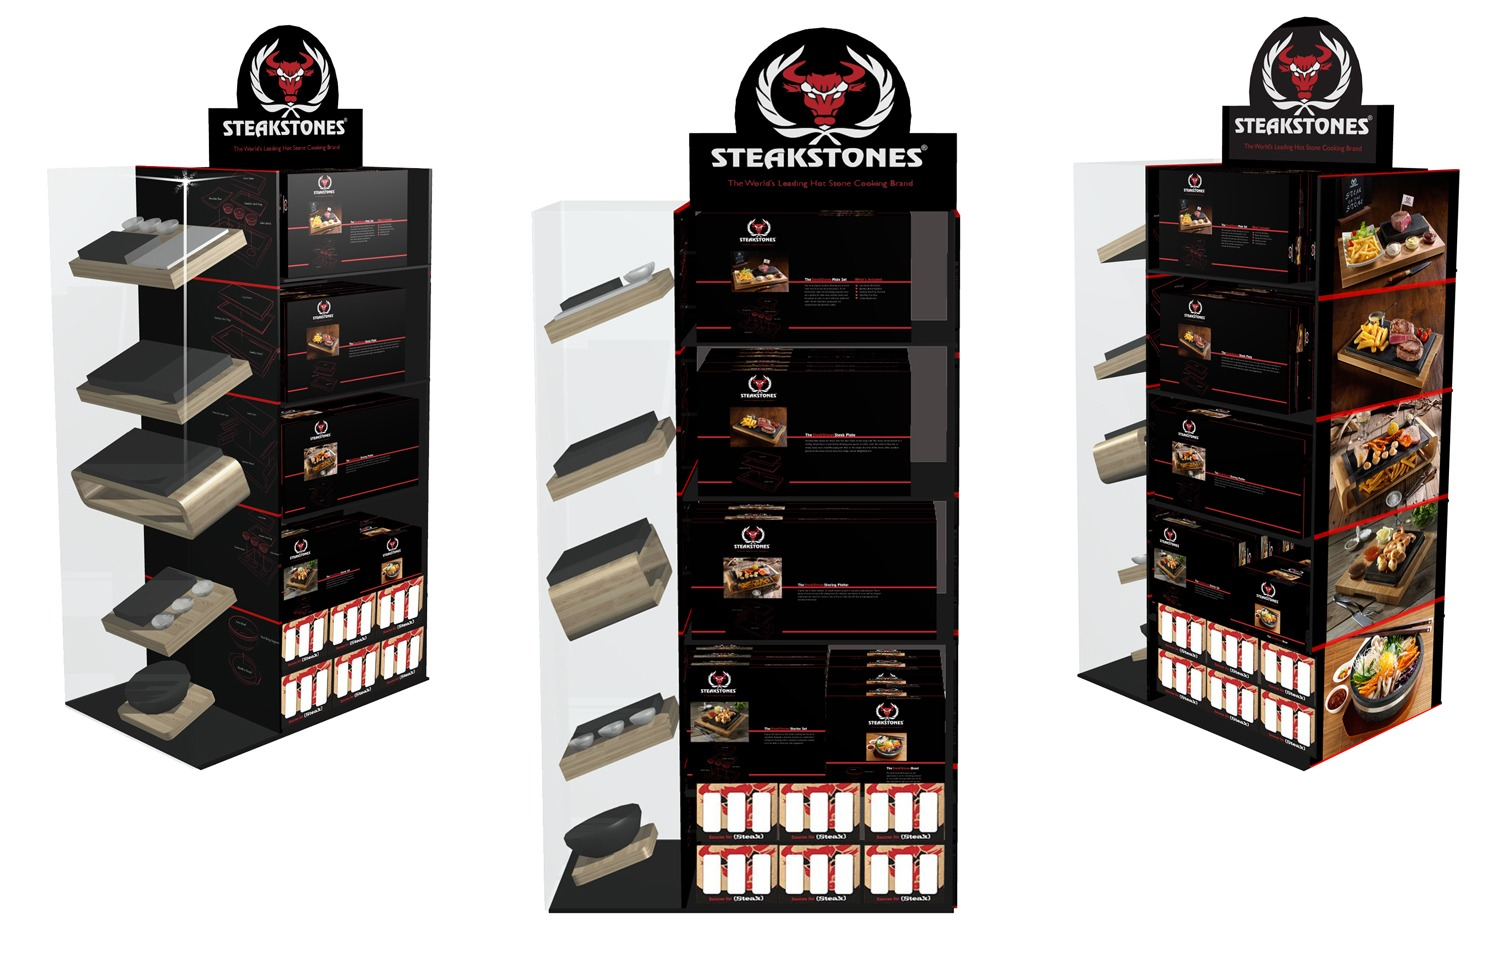 SteakStones Point of Sale display units for retail.